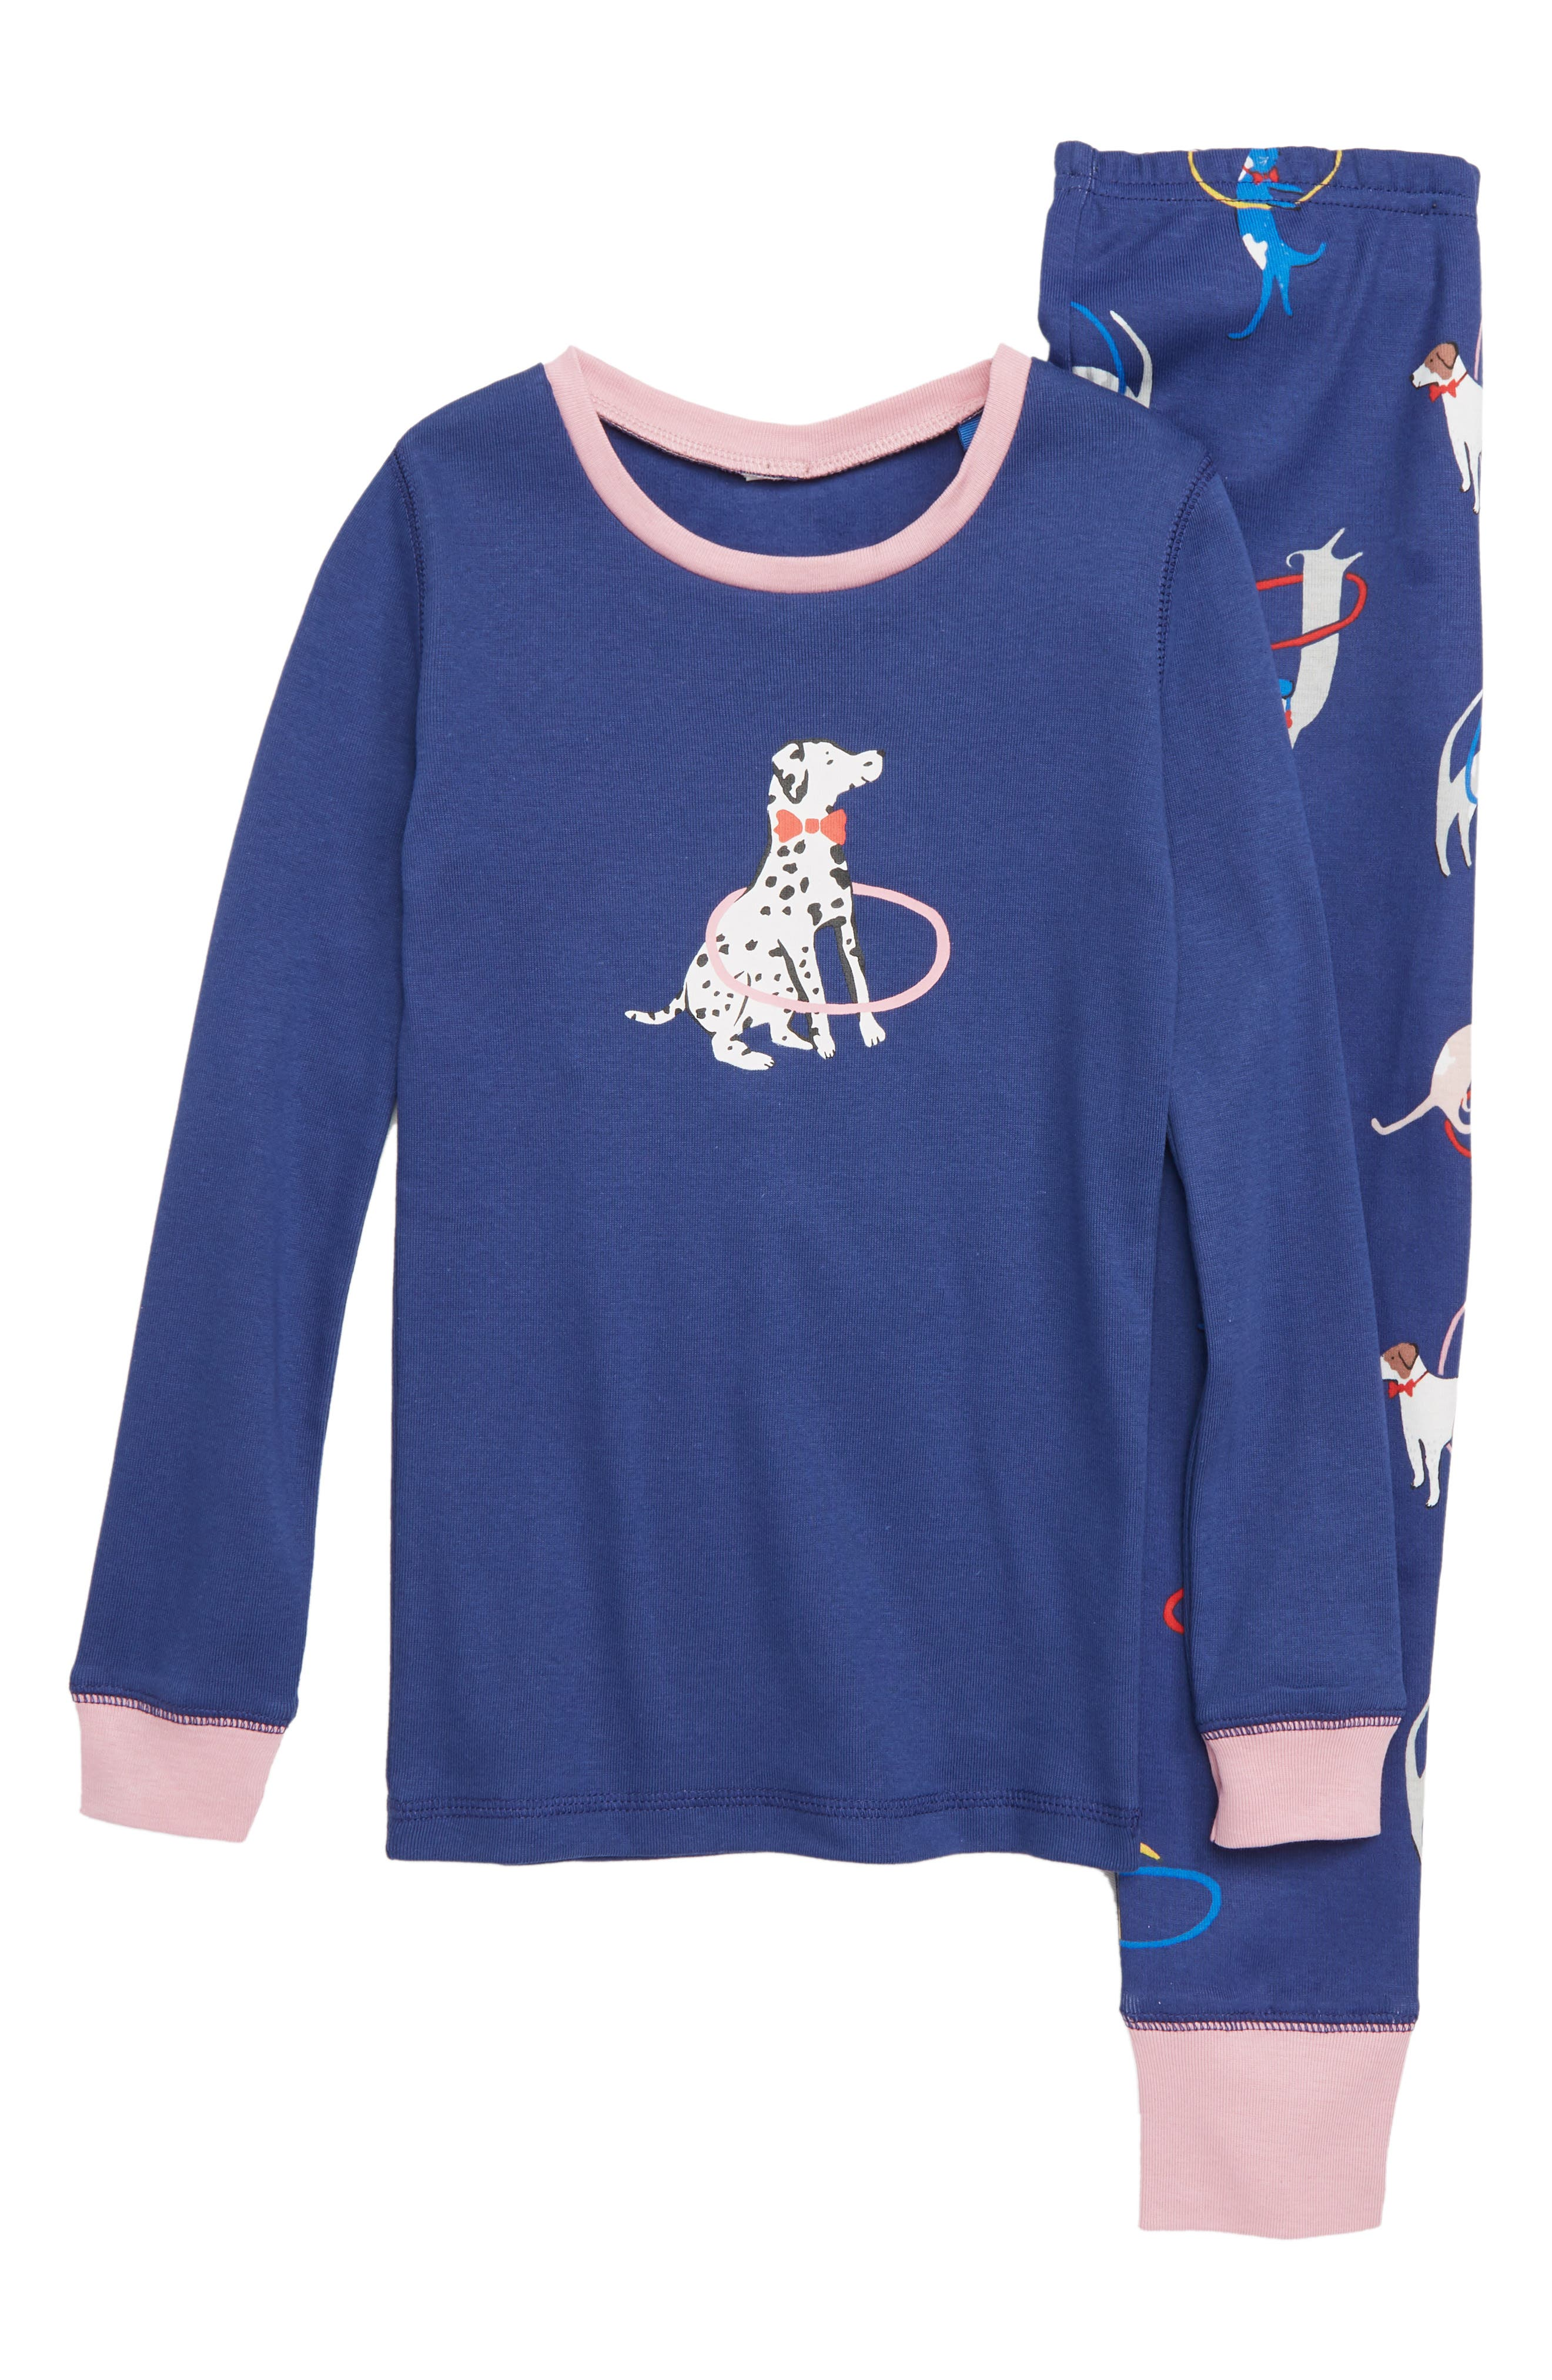 Fitted Cosy Long John Pajamas,                         Main,                         color, NAVY STARBOARD BLUE